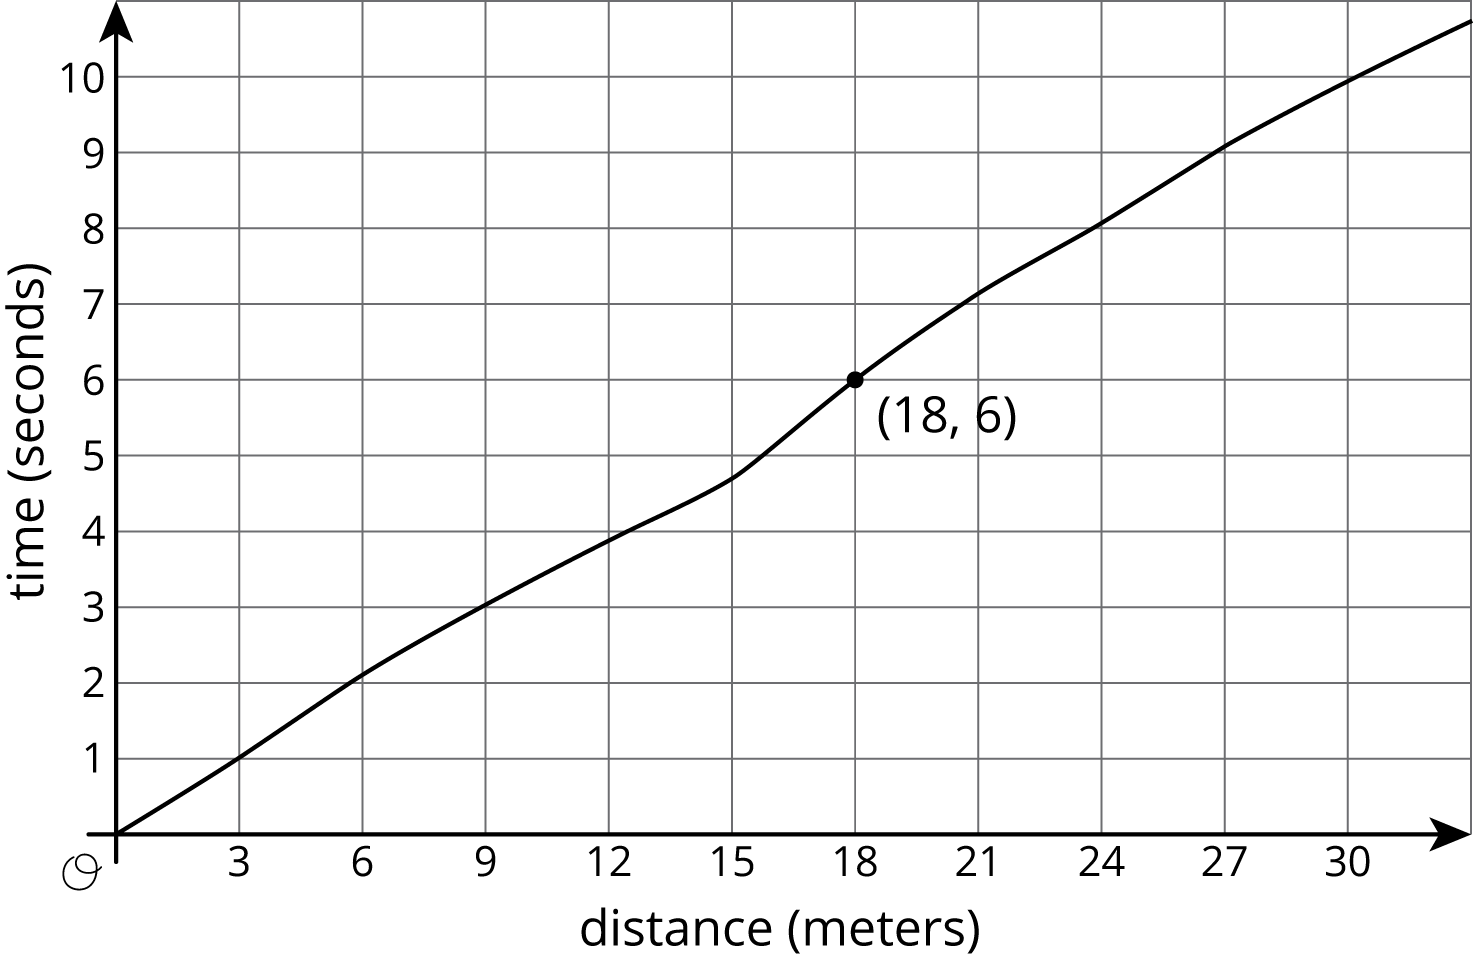 "A graph of a function in the coordinate plane with the origin labeled ""O"". The horizontal axis is labeled ""distance in meters"" and the numbers 0 through 30, in increments of 3, are indicated. The vertical axis is labeled ""time in seconds"" and the numbers 0 through 10 are indicated. The function is approximately linear. It starts at the origin and moves upward and to the right, passing through the points with the coordinates 3 comma 1, 9 comma 3, 18 comma 6, and 30 comma 10."